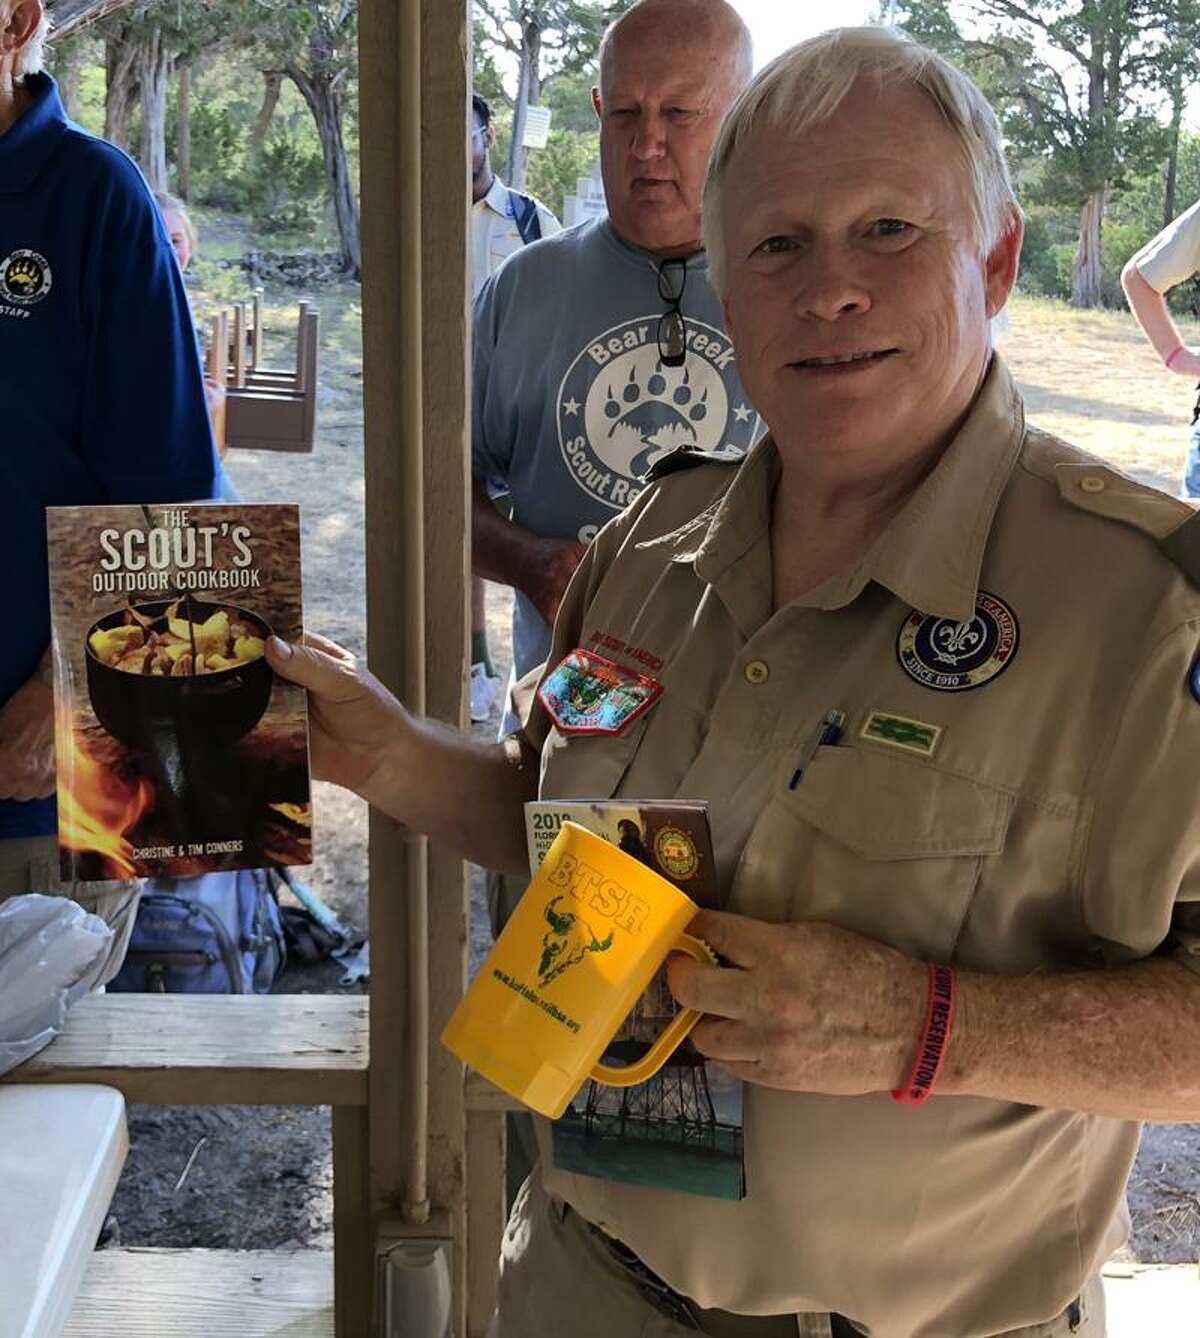 Robert Balfour receives his first place prize for his Dutch oven cobbler.